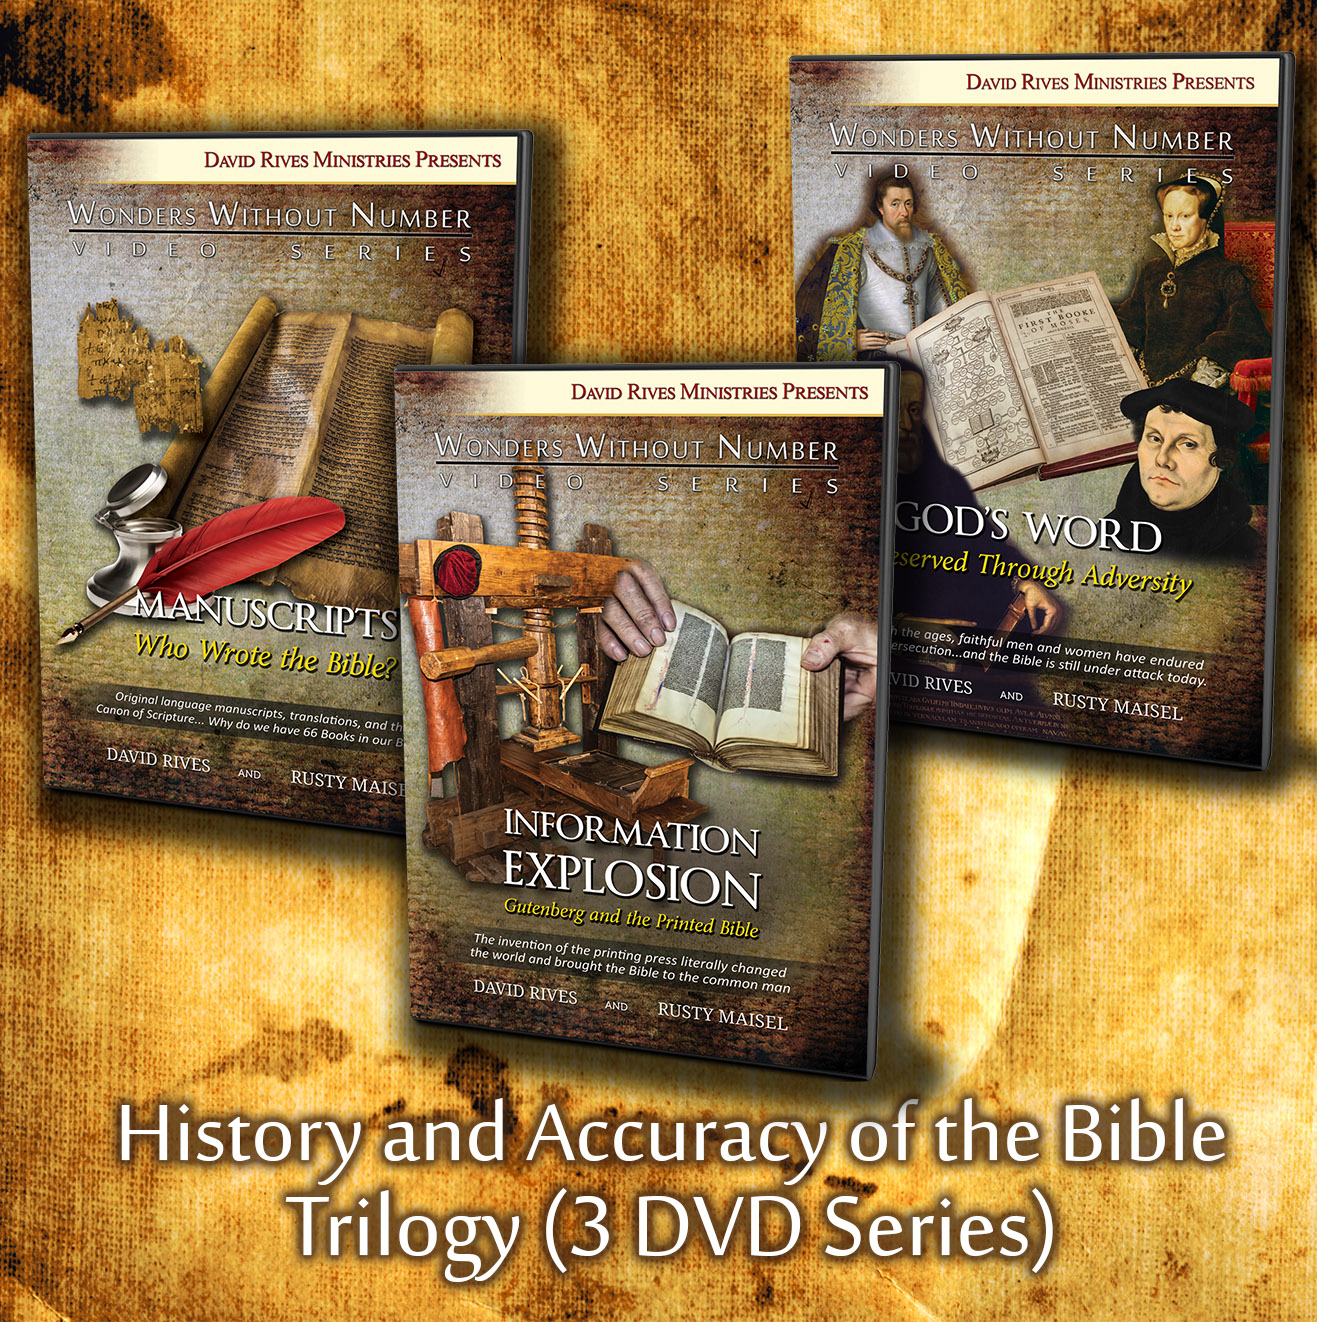 History and Accuracy of the Bible Trilogy DVD Series